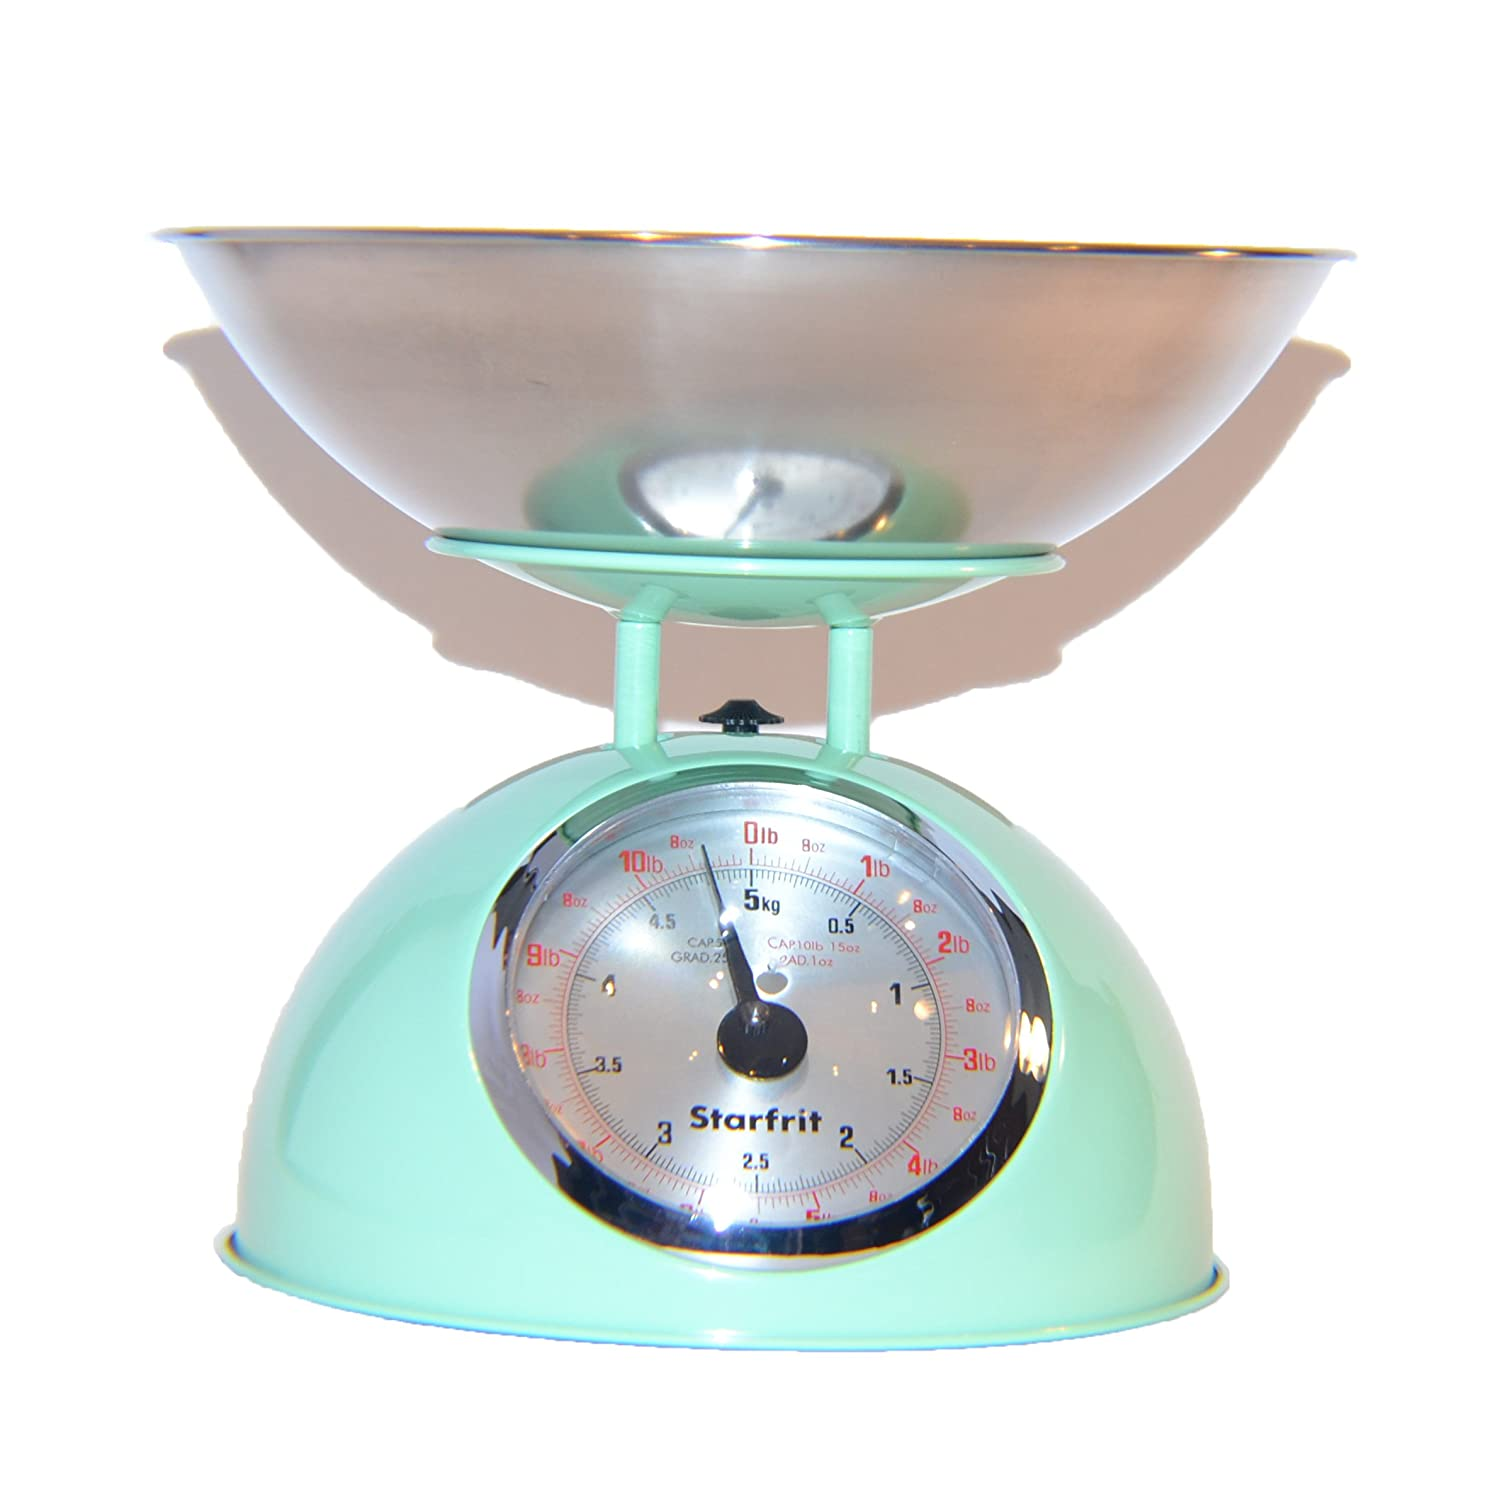 Starfrit Kitchen Scale with Stainless Steel Bowl (Green): Amazon.ca ...